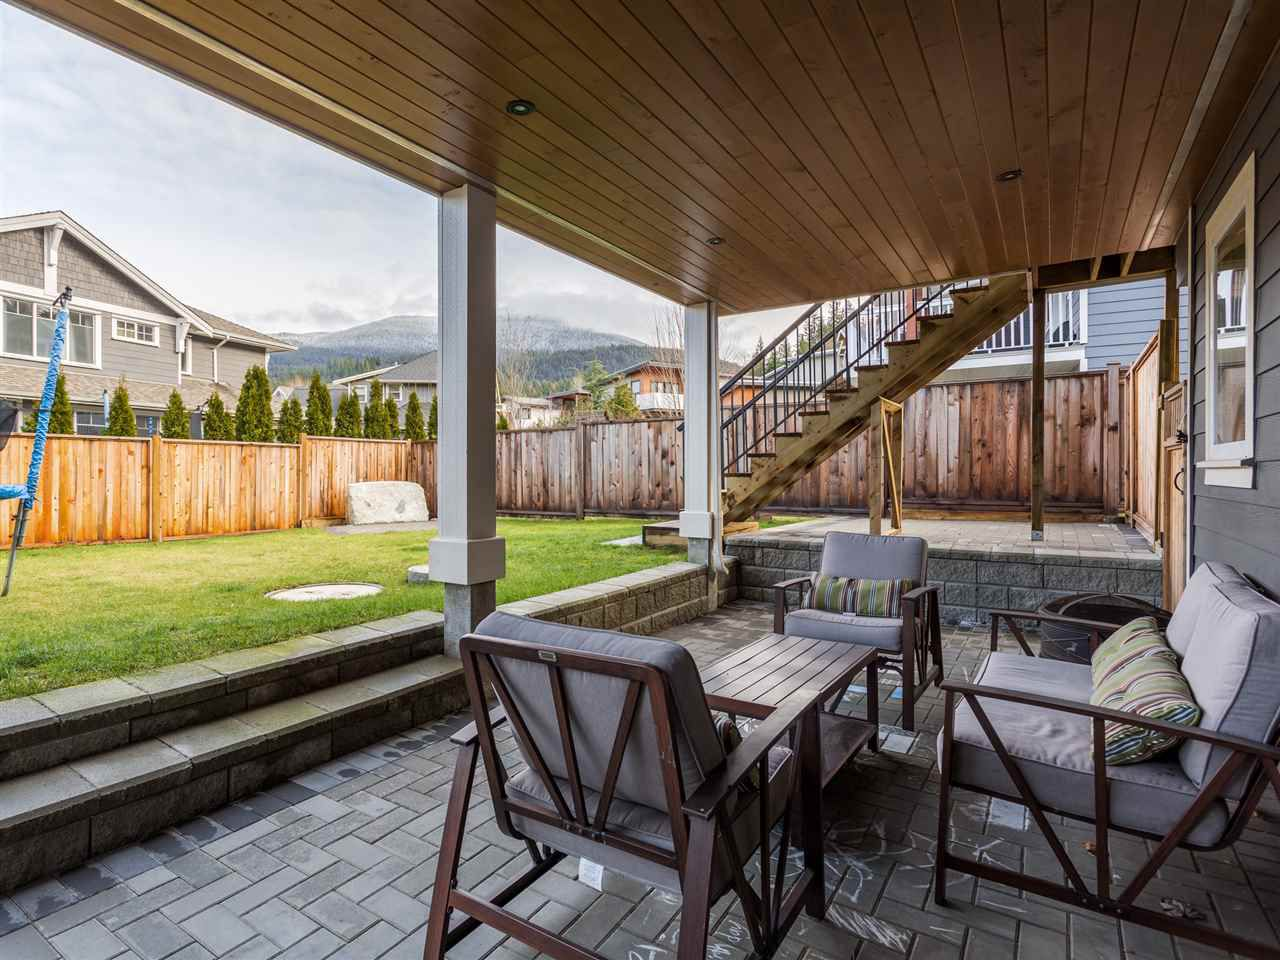 Photo 19: Photos: 1035 JAY CRESCENT in Squamish: Garibaldi Highlands House for sale : MLS®# R2031840